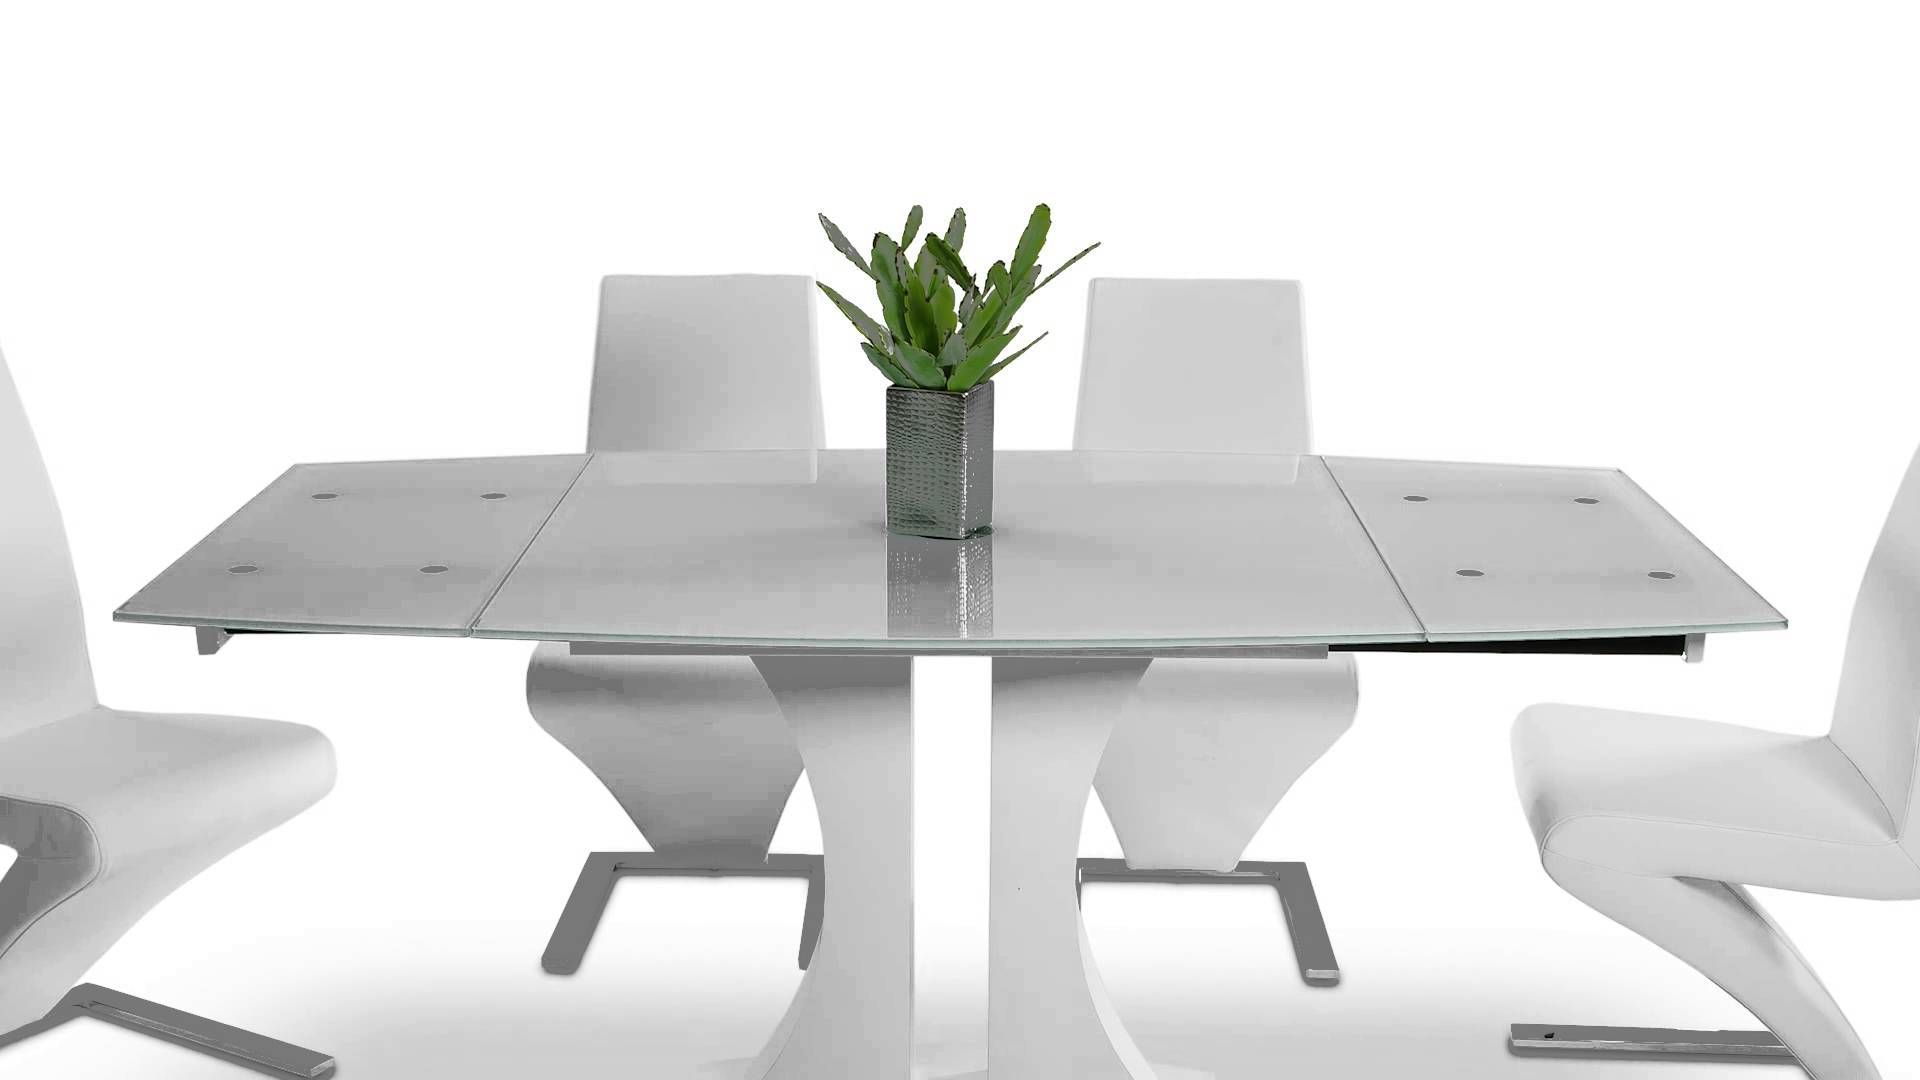 Split Modern White Extend Able Dining Table Vggu2331xt Wht Bunch Ideas Of Glass Ext White Dining Table Modern Modern Dining Table Mid Century Modern Dining Set